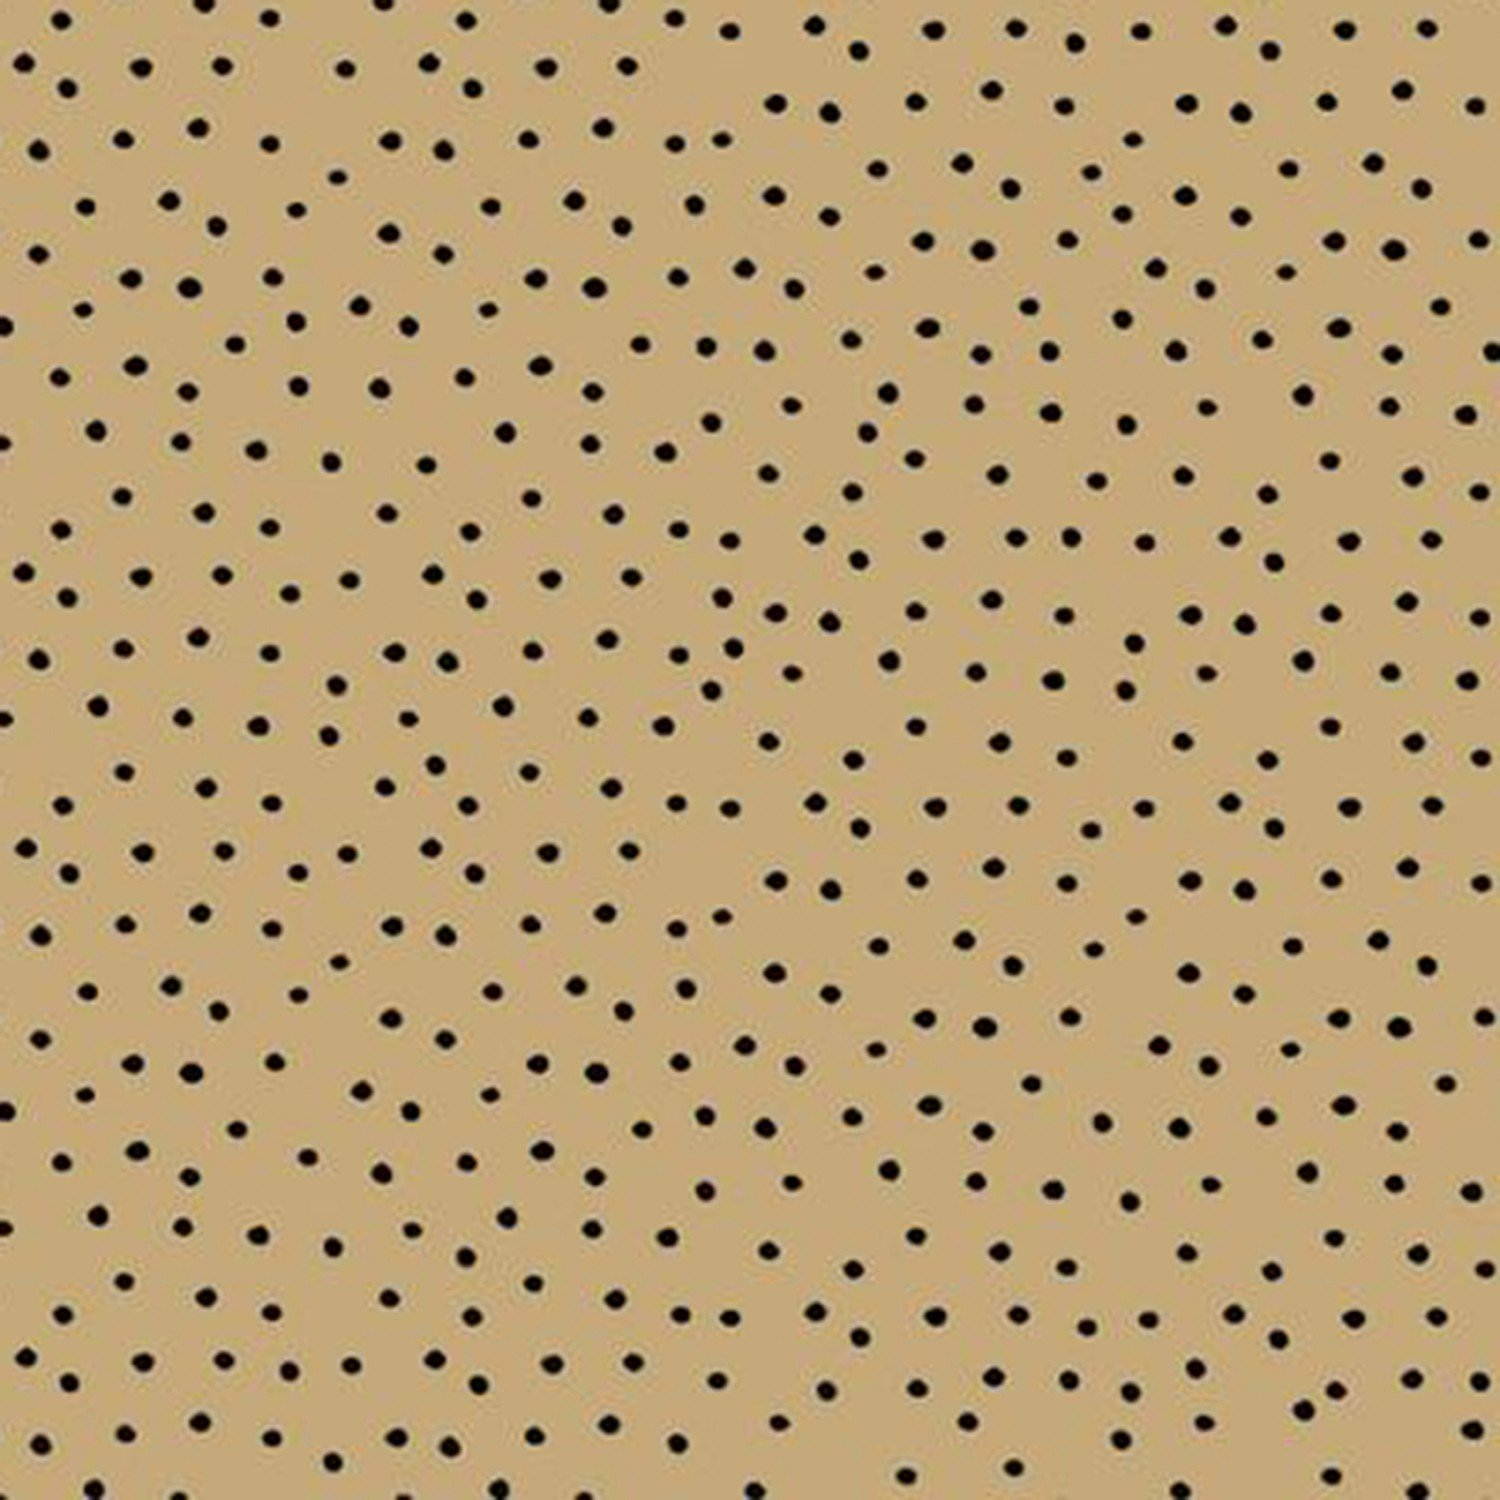 Dinky Dots Tan and Black